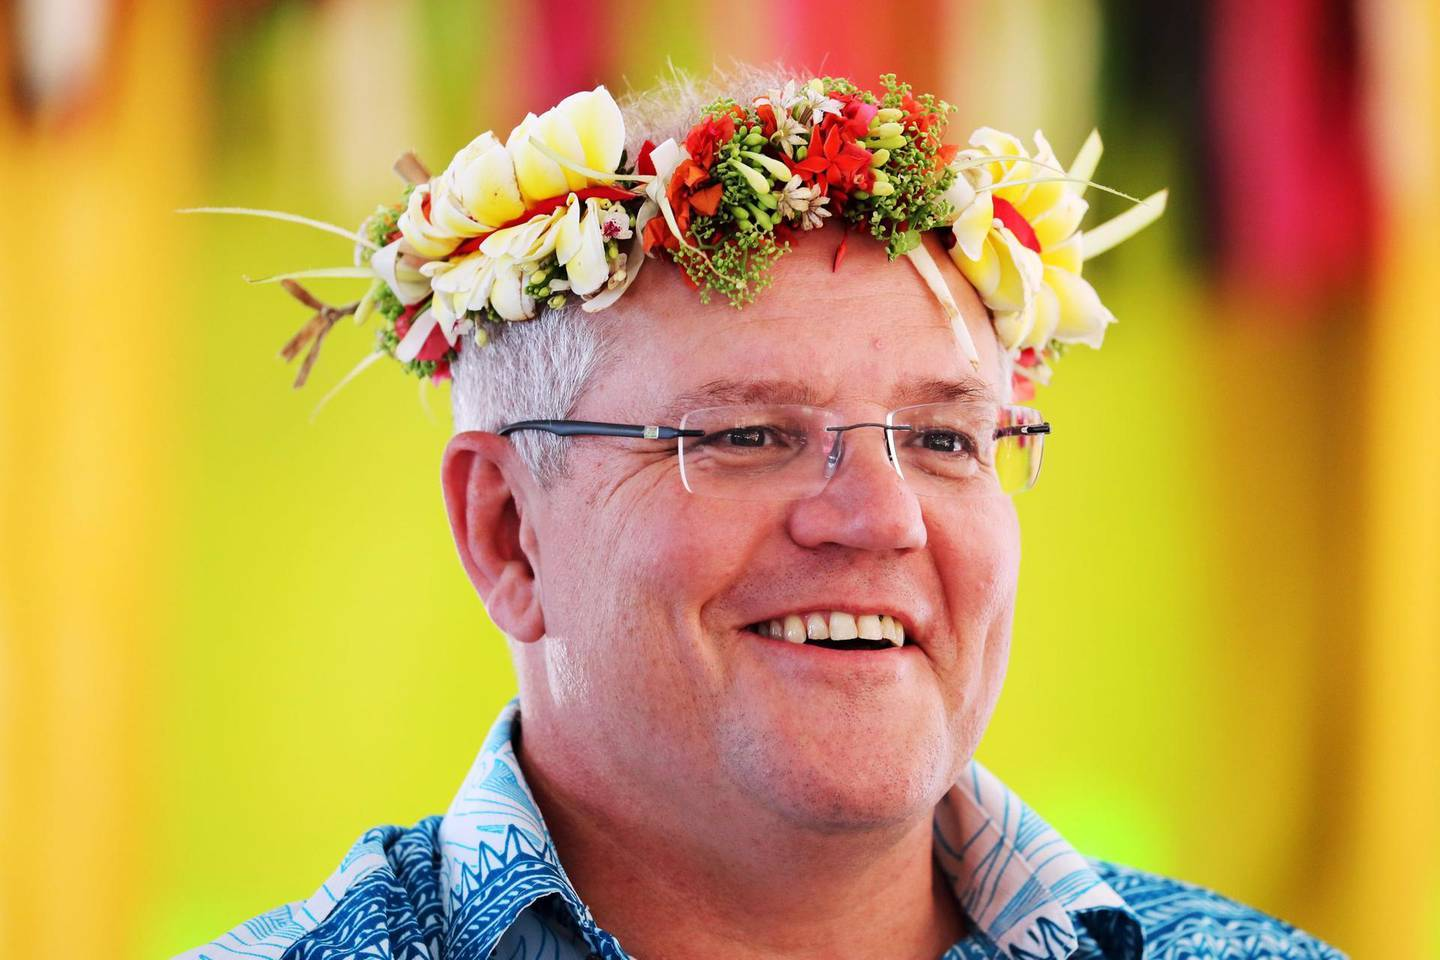 """This handout photo taken on August 14, 2019 and released on August 15 by the Australian Prime Minister's Office shows Australia's Prime Minister Scott Morrison arriving for the Pacific Islands Forum in Tuvalu.  Australia's Scott Morrison arrived at a meeting of Pacific island leaders in Tuvalu with Canberra's regional leadership in question amid intense scrutiny of his government's climate change policies. - XGTY  -----EDITORS NOTE --- RESTRICTED TO EDITORIAL USE - MANDATORY CREDIT """"AFP PHOTO / AUSTRALIAN PRIME MINISTER'S OFFICE """" - NO MARKETING - NO ADVERTISING CAMPAIGNS - DISTRIBUTED AS A SERVICE TO CLIENTS - NO ARCHIVES   / AFP / AUSTRALIAN PRIME MINISTER'S OFFICE / Adam TAYLOR / XGTY  -----EDITORS NOTE --- RESTRICTED TO EDITORIAL USE - MANDATORY CREDIT """"AFP PHOTO / AUSTRALIAN PRIME MINISTER'S OFFICE """" - NO MARKETING - NO ADVERTISING CAMPAIGNS - DISTRIBUTED AS A SERVICE TO CLIENTS - NO ARCHIVES"""